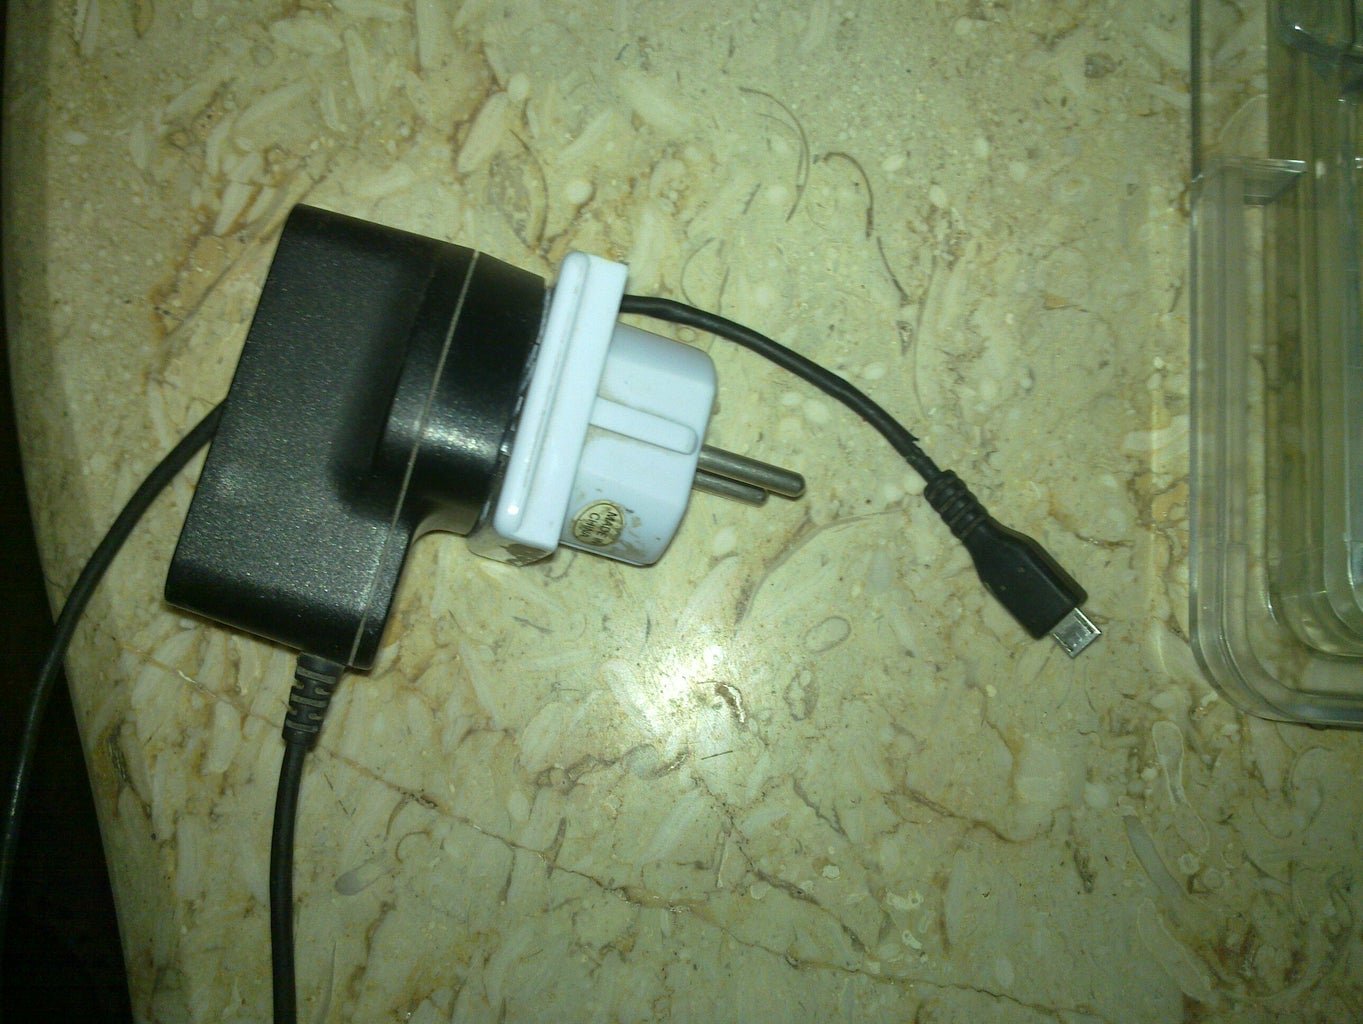 Repairing Nokia Cell Phone Recharger Cable.